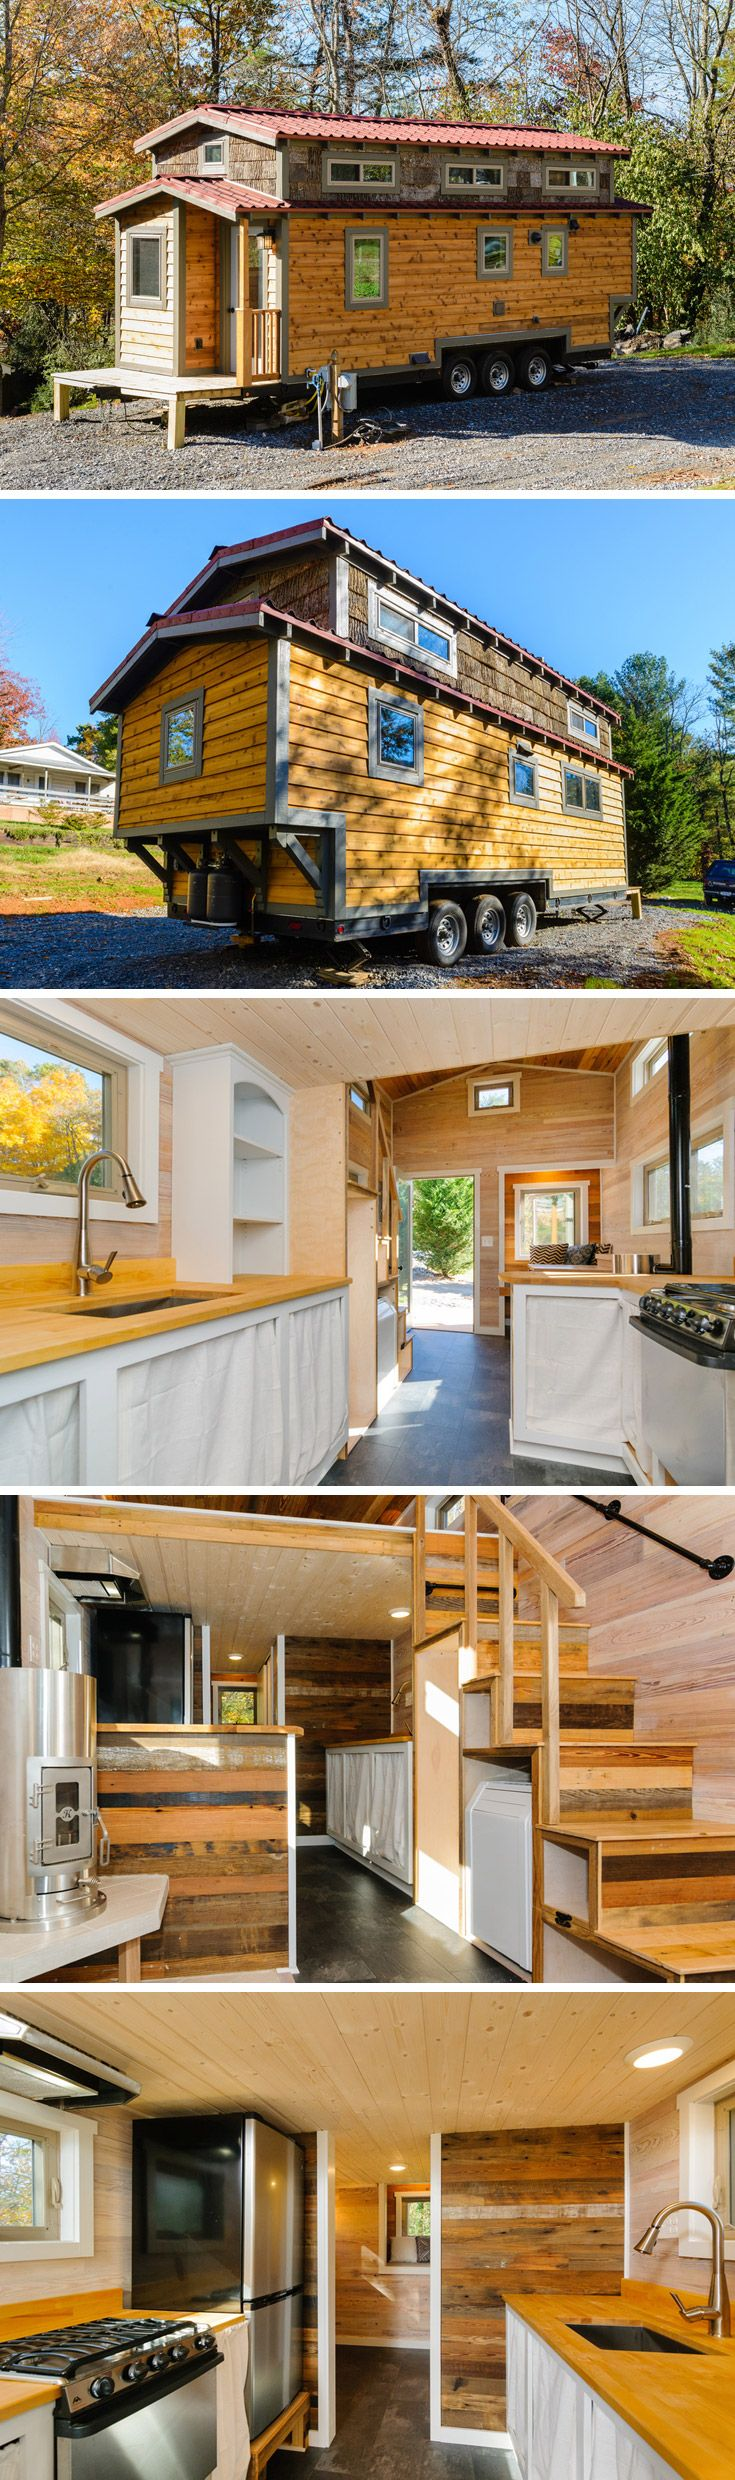 Tiny house with an eye-catching exterior consisting of cedar and poplar, and the interior uses reclaimed barn wood.